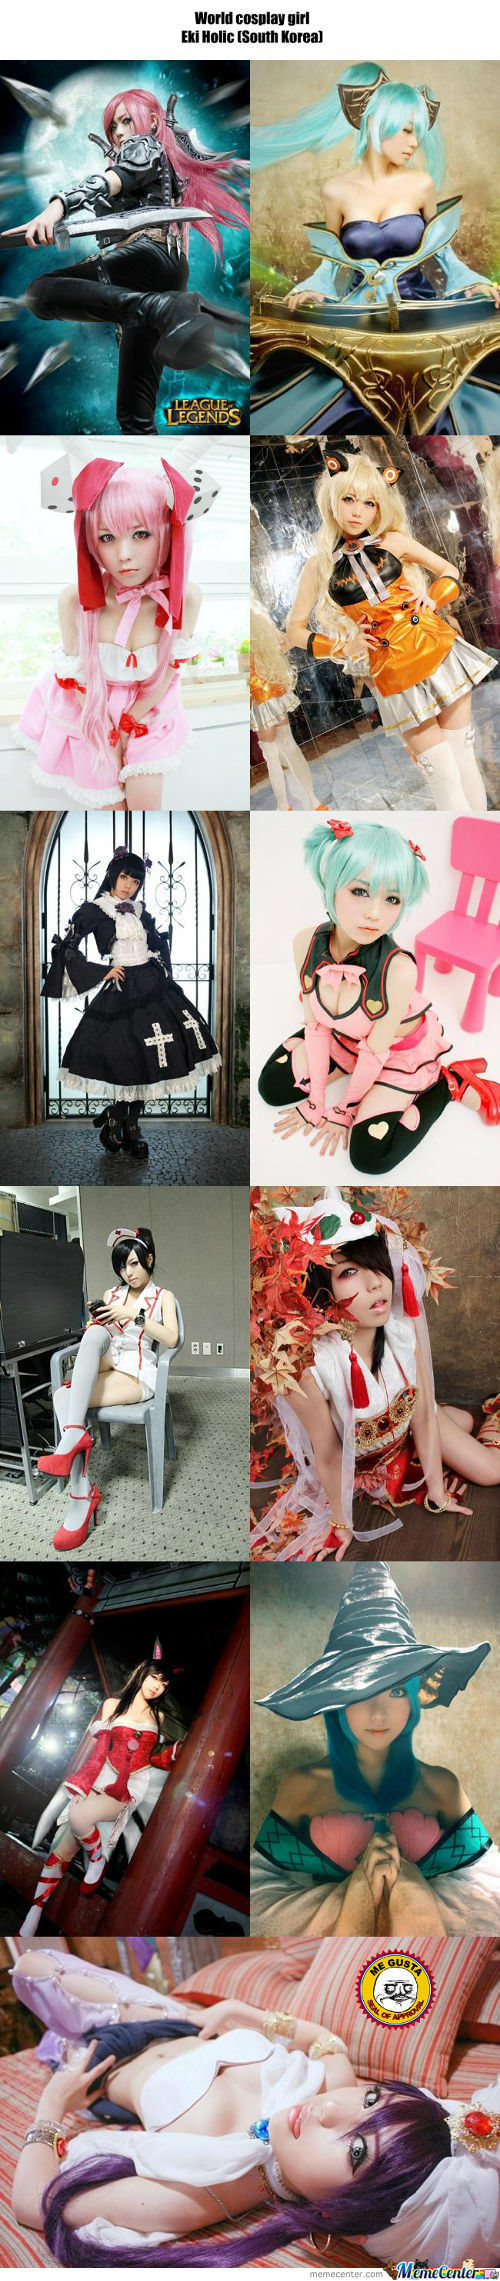 Cosplay Girl 32 : Eki Holic (South Korea)